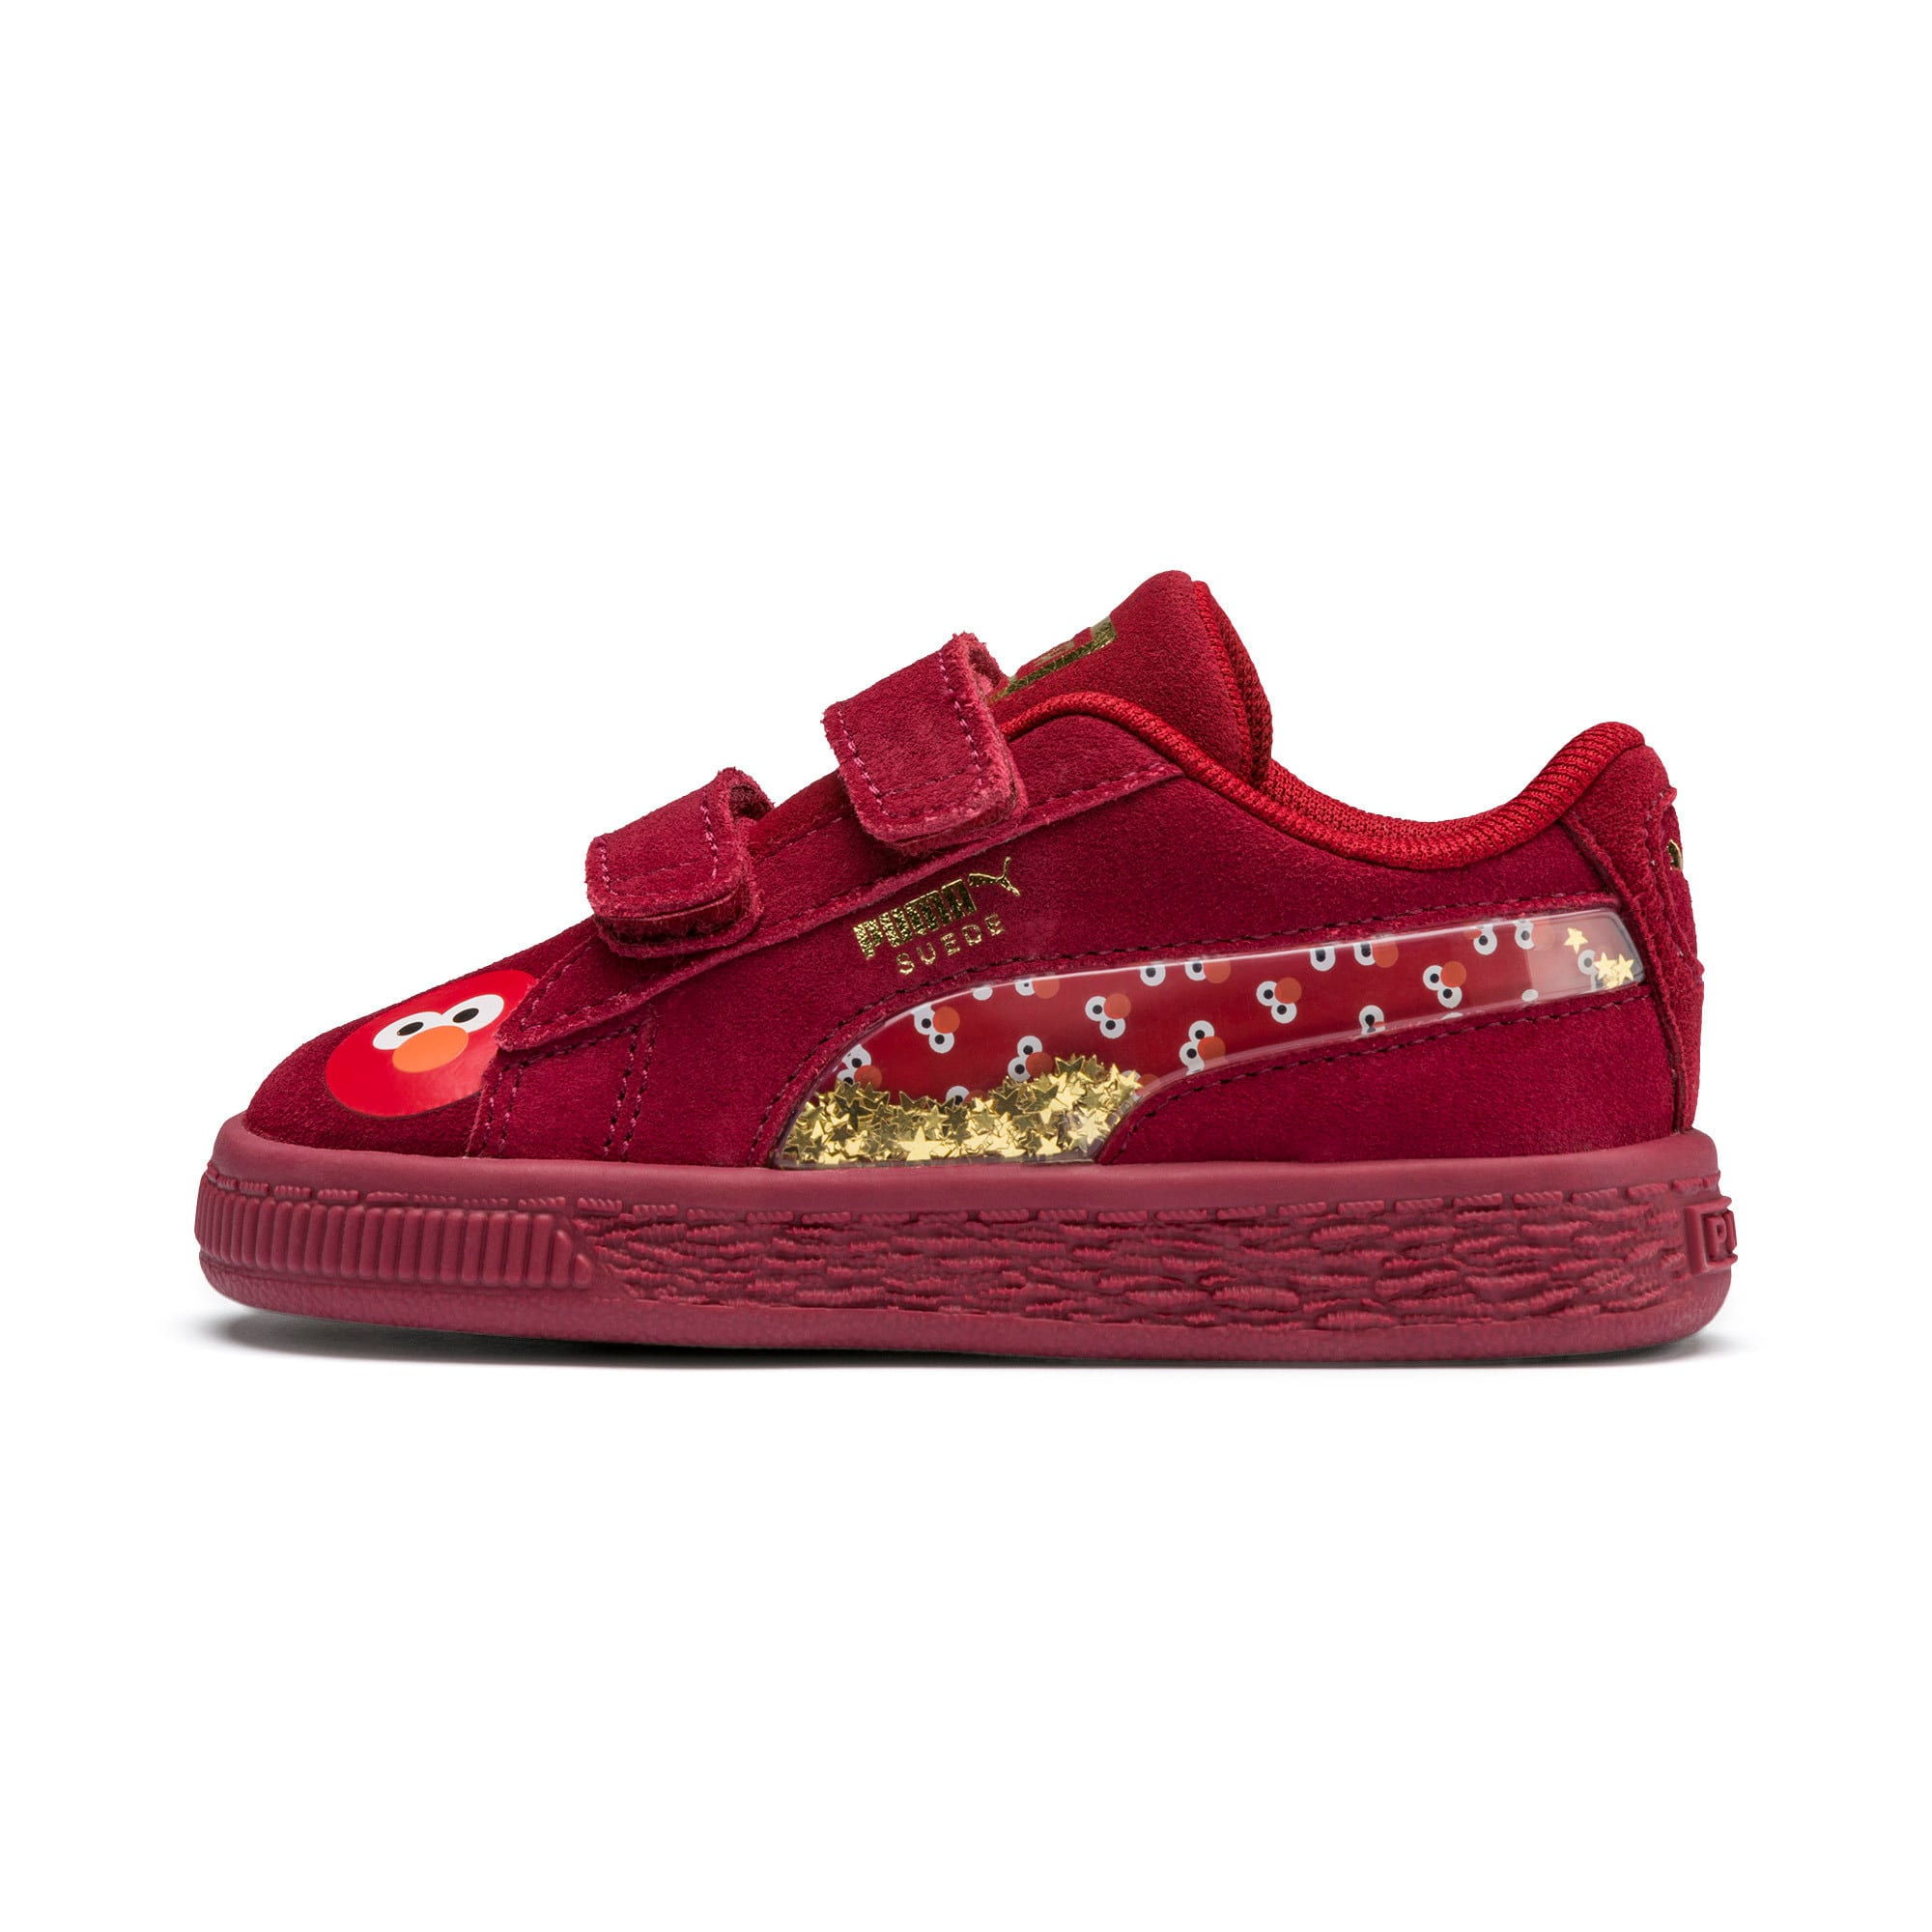 Thumbnail 1 of Sesame Street 50 Suede Statement Babies' Trainers, Rhubarb-Puma White, medium